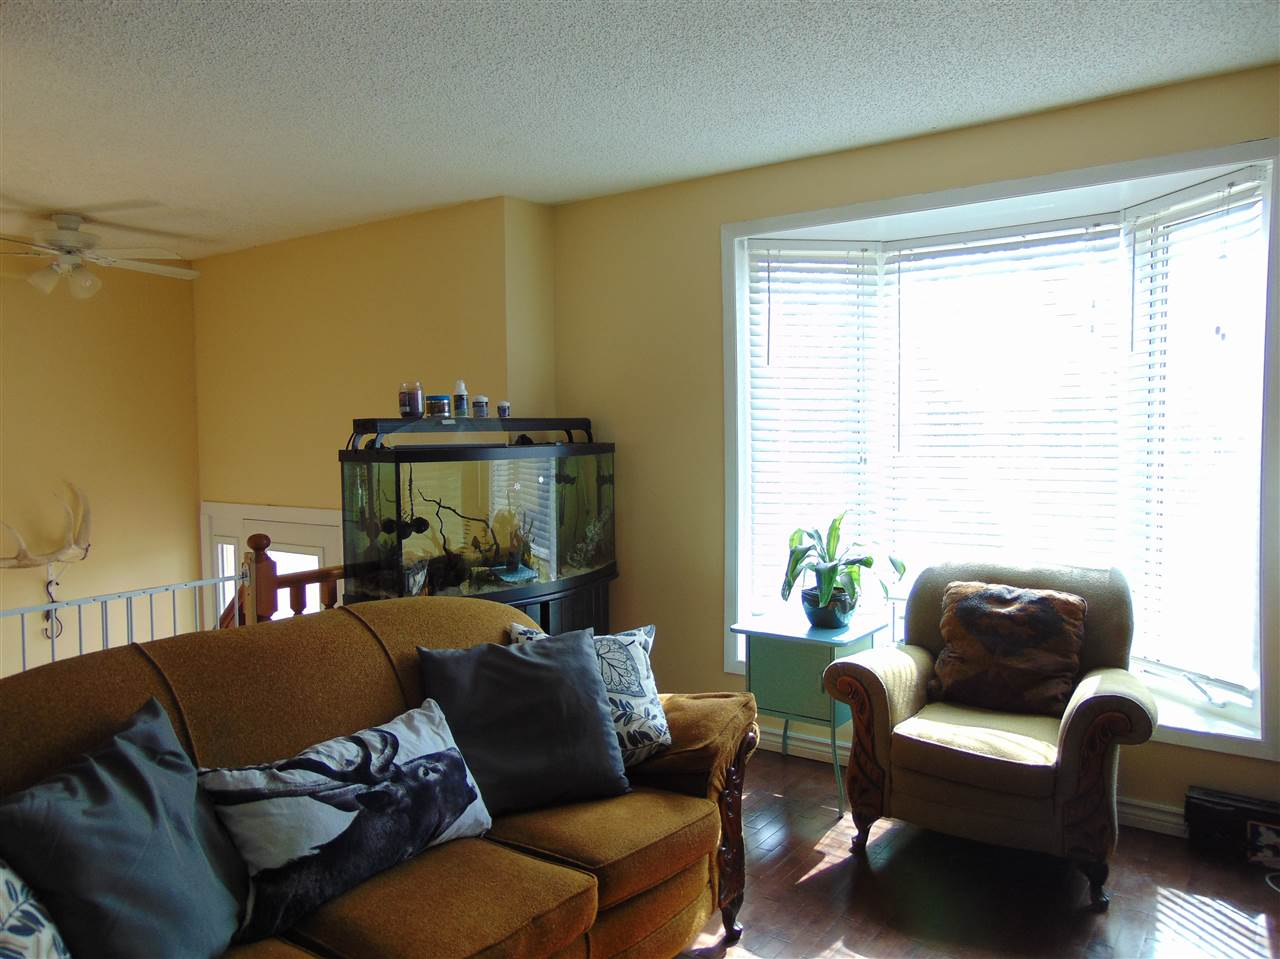 Photo 6: 4604 43 Avenue: Gibbons House for sale : MLS(r) # E4060108